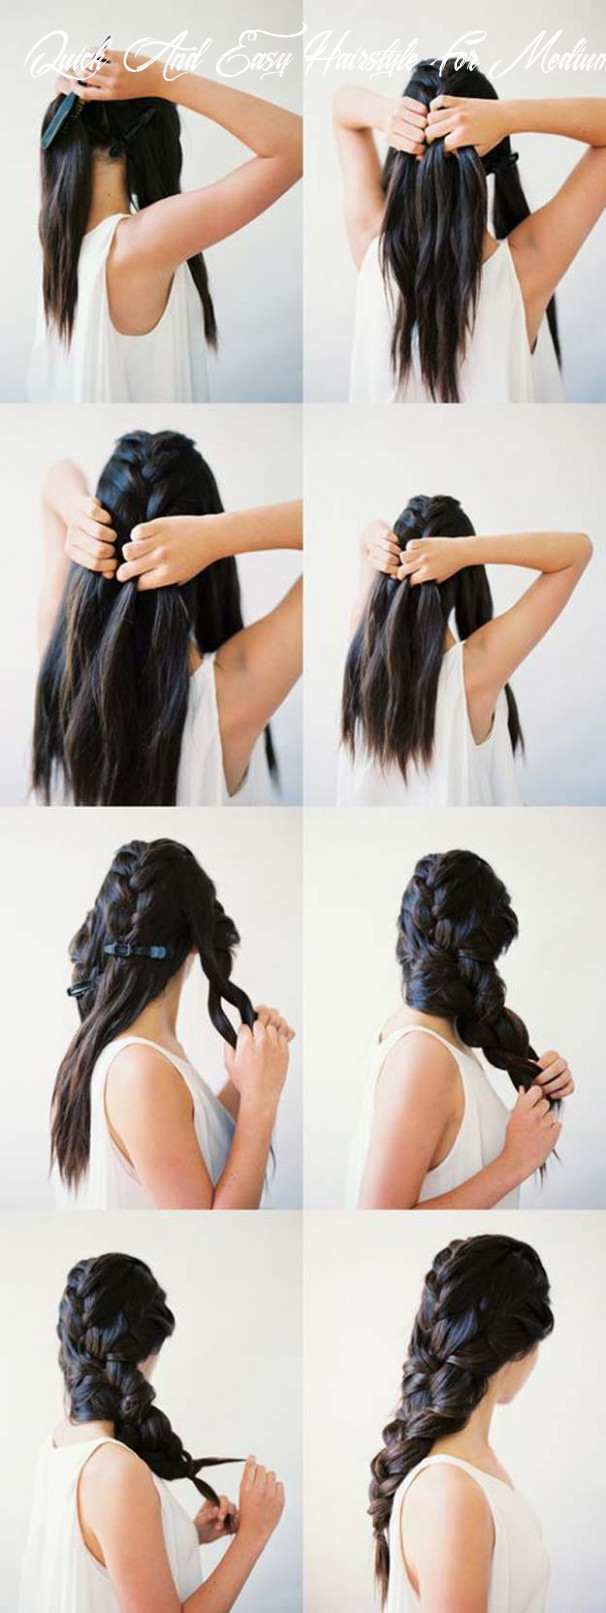 11 diy cool easy hairstyles that real people can actually do at home! quick and easy hairstyle for medium hair